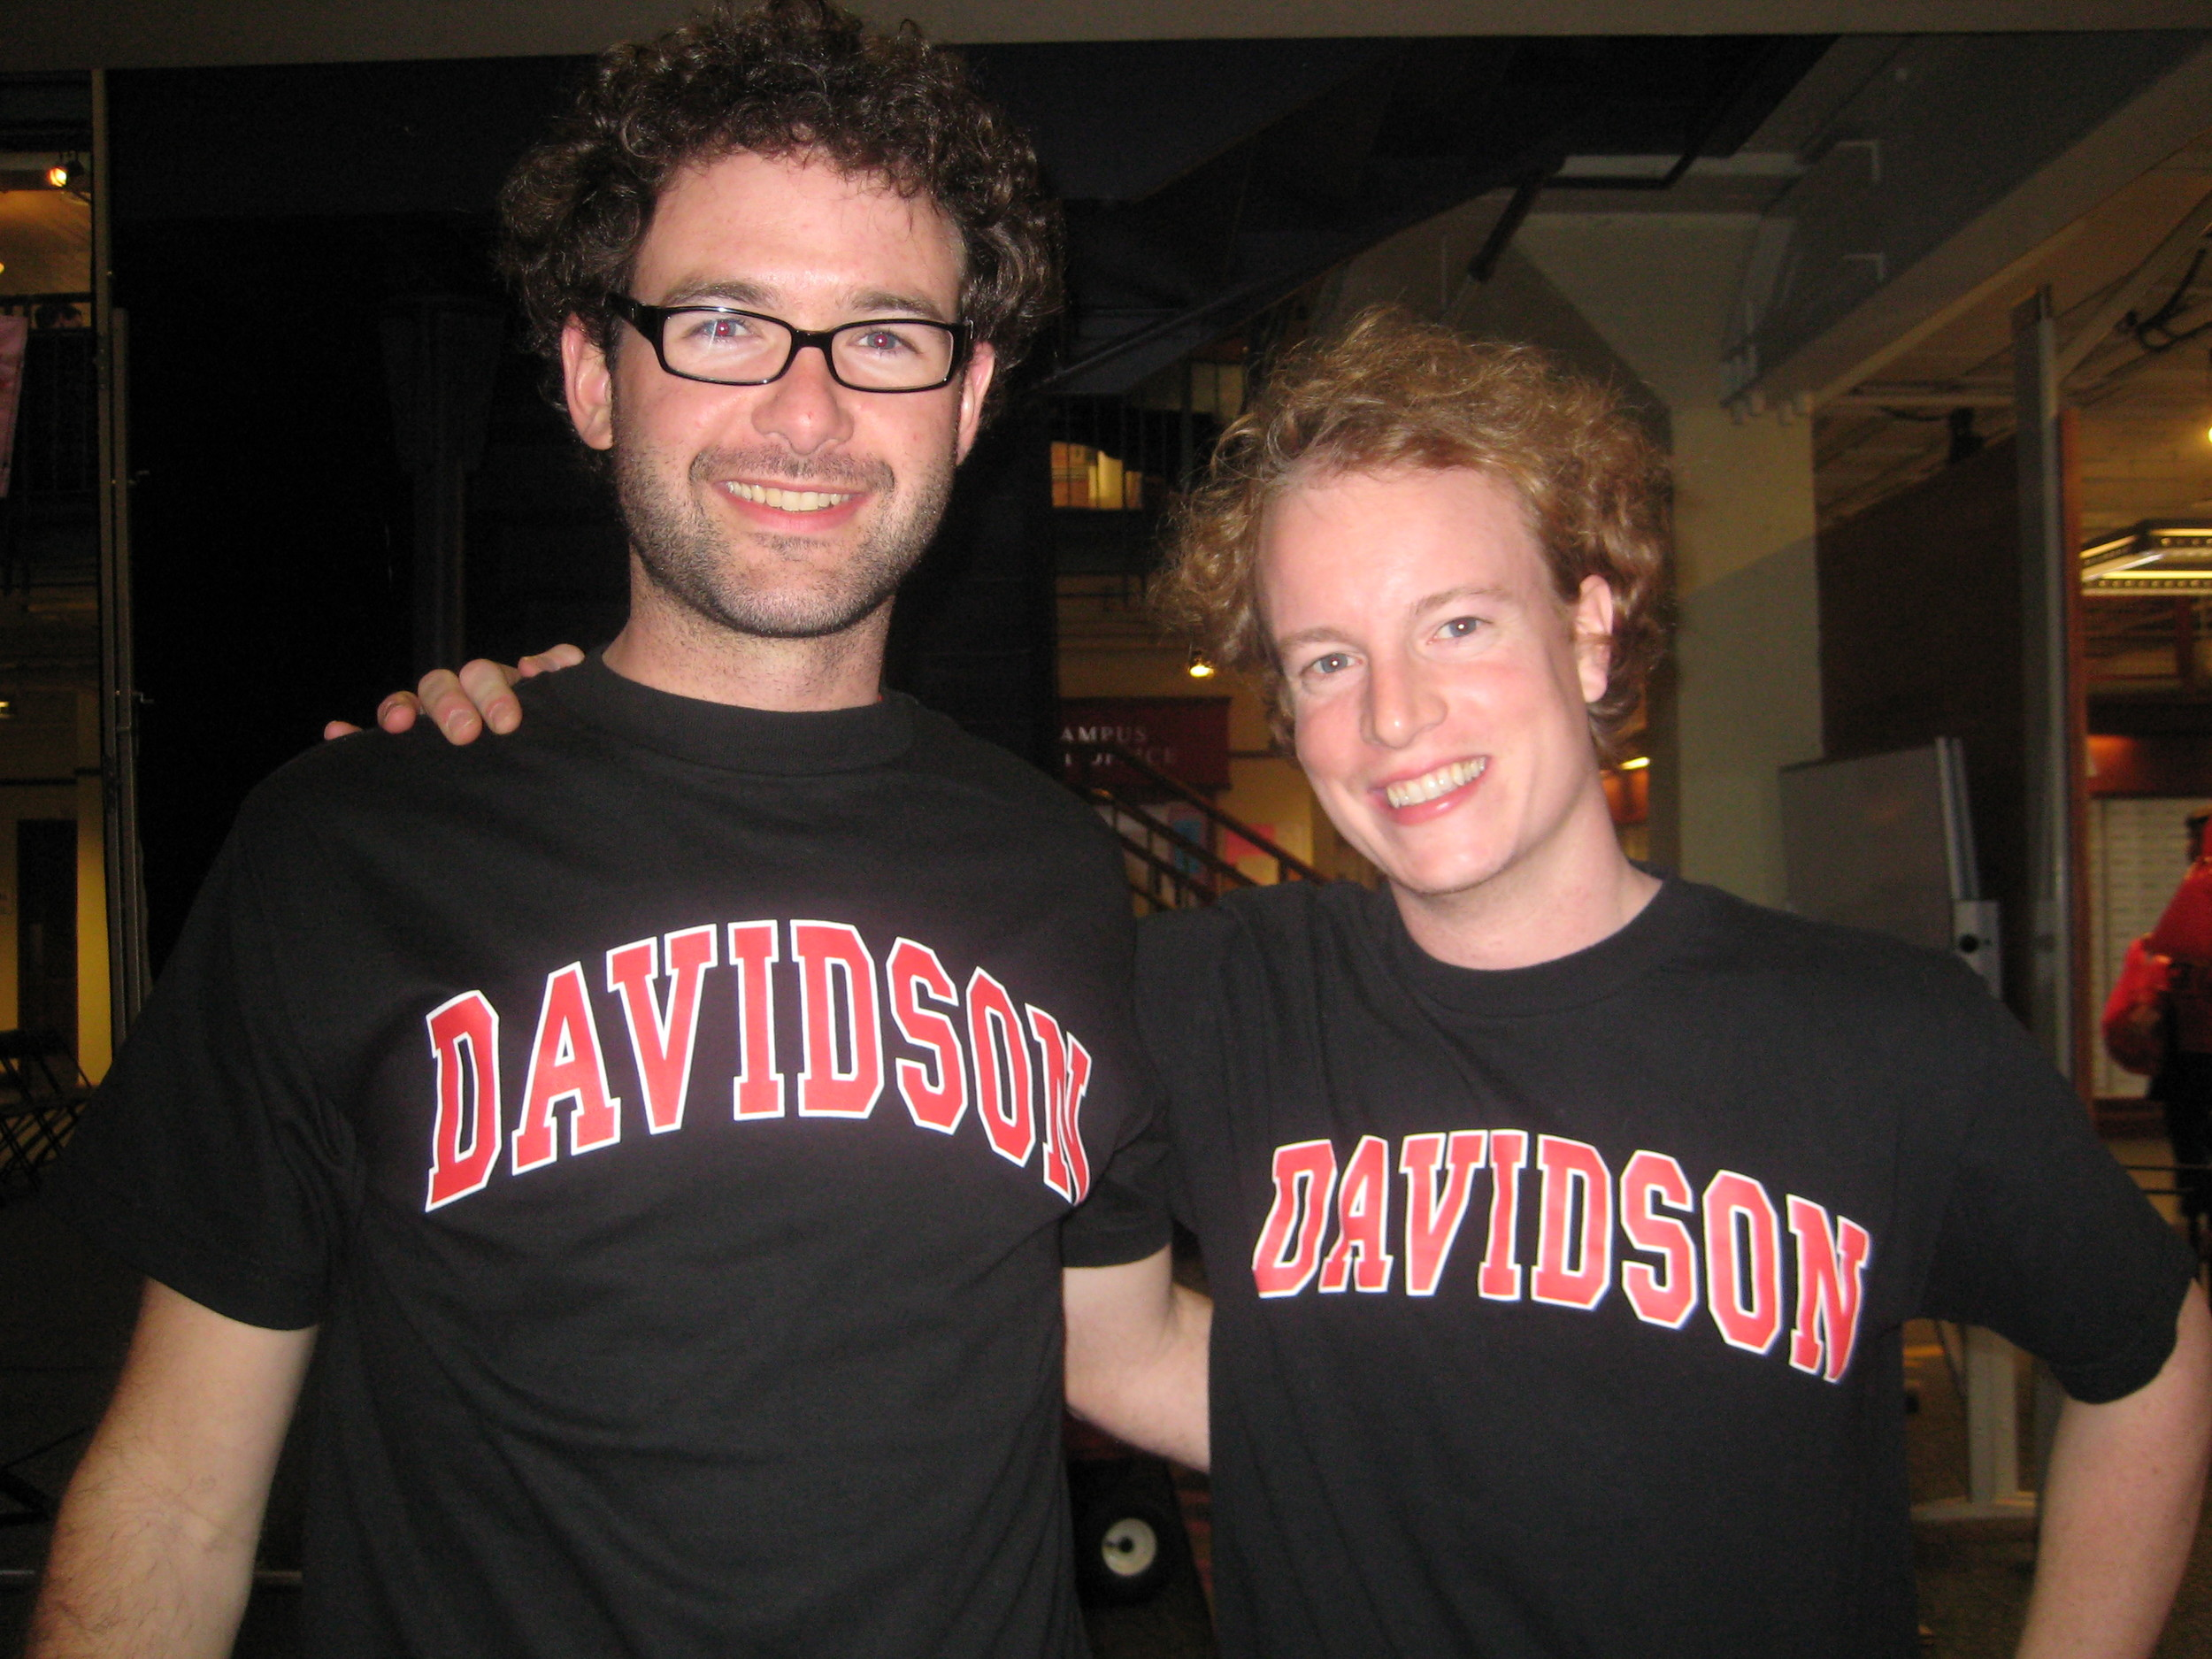 david and chris with their newly purchased black out shirts